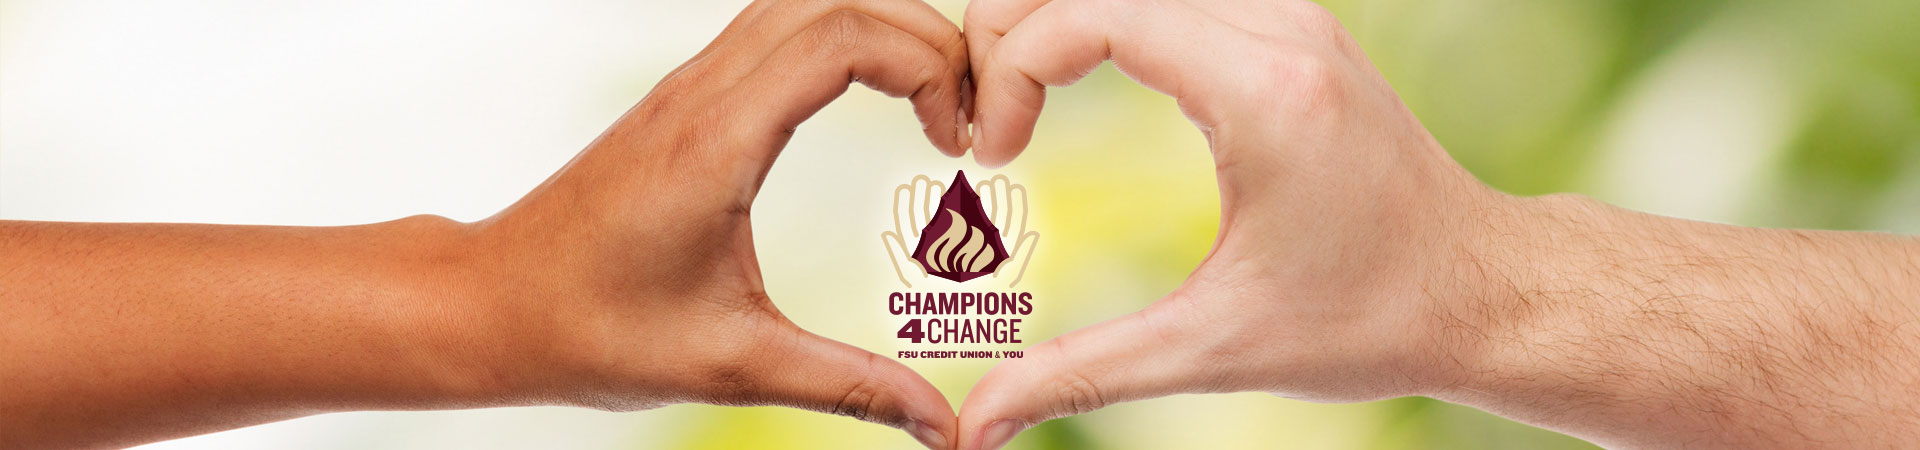 Champions for change logo and hands